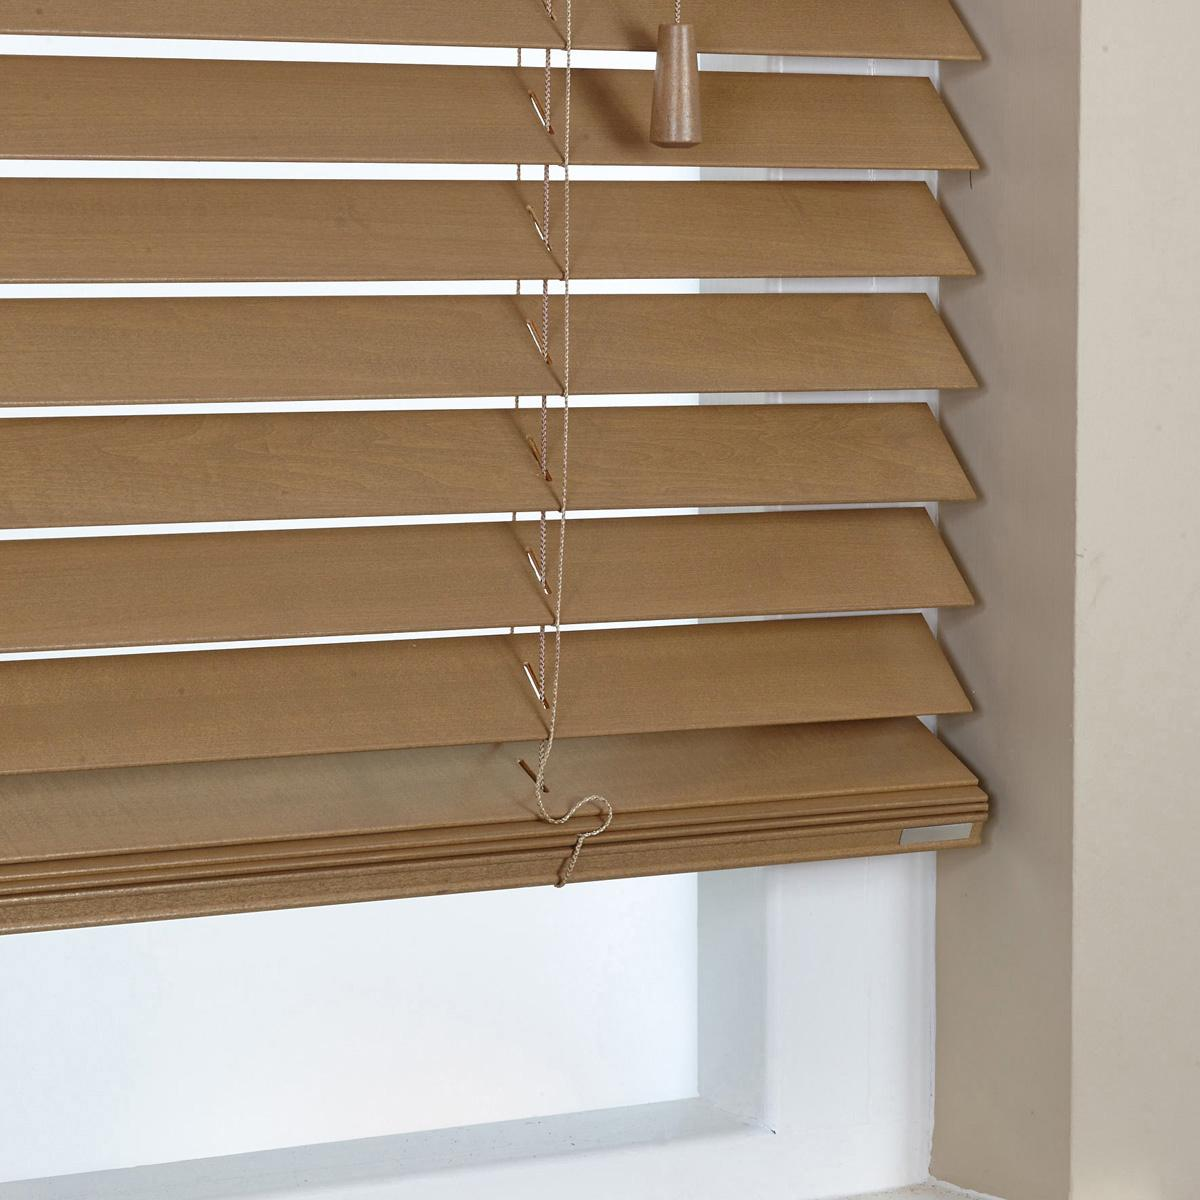 Bargain Tawny 50mm Elementi Wood Venetian Blind Stockists